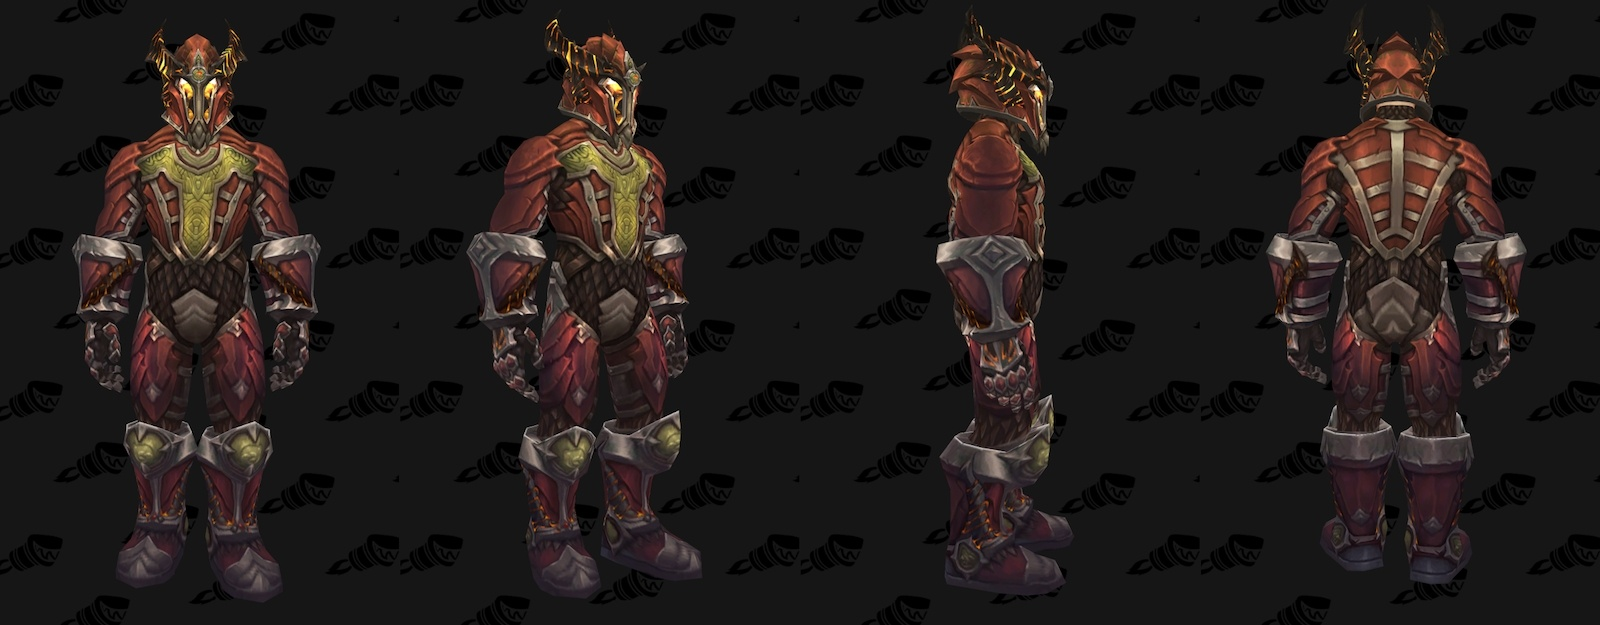 Legion Alpha Build 21063 New Models: Warrior Tier 19, Artifact ...